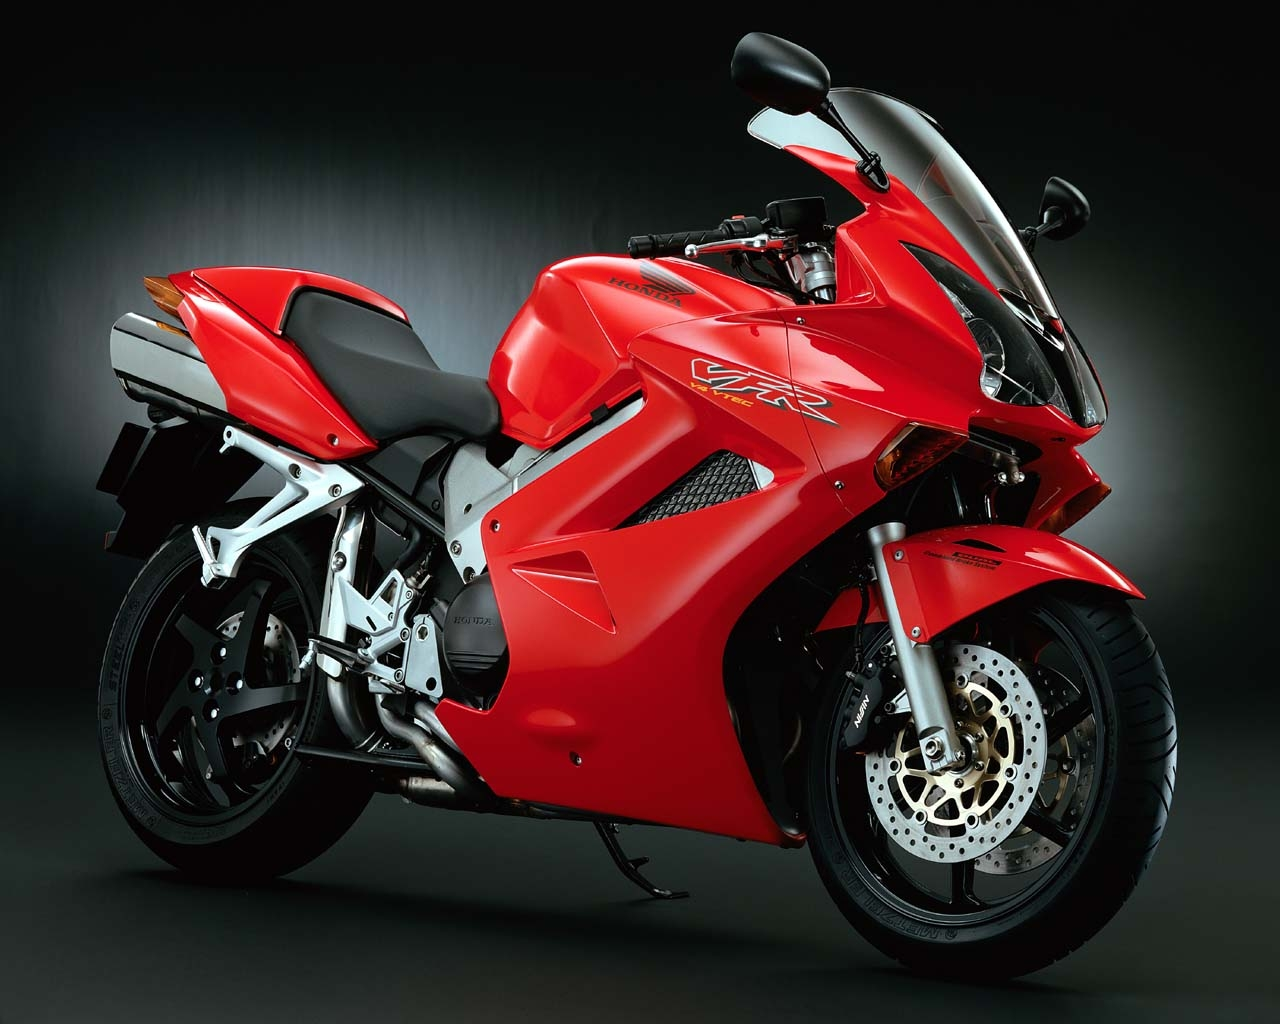 2009 Honda VFR800 Sport Bike Picture